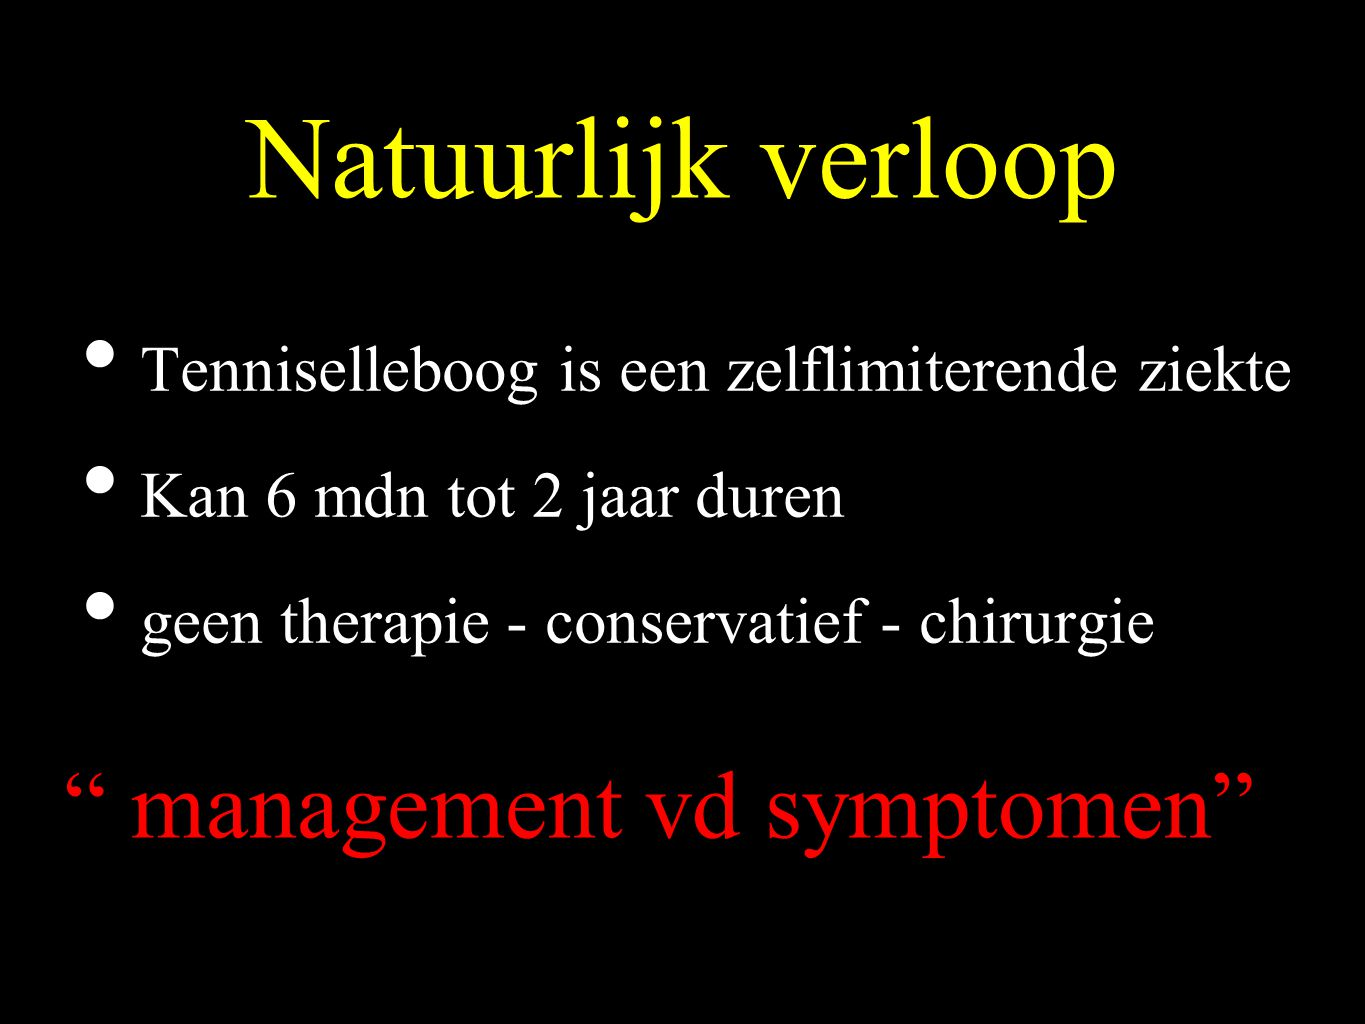 management vd symptomen